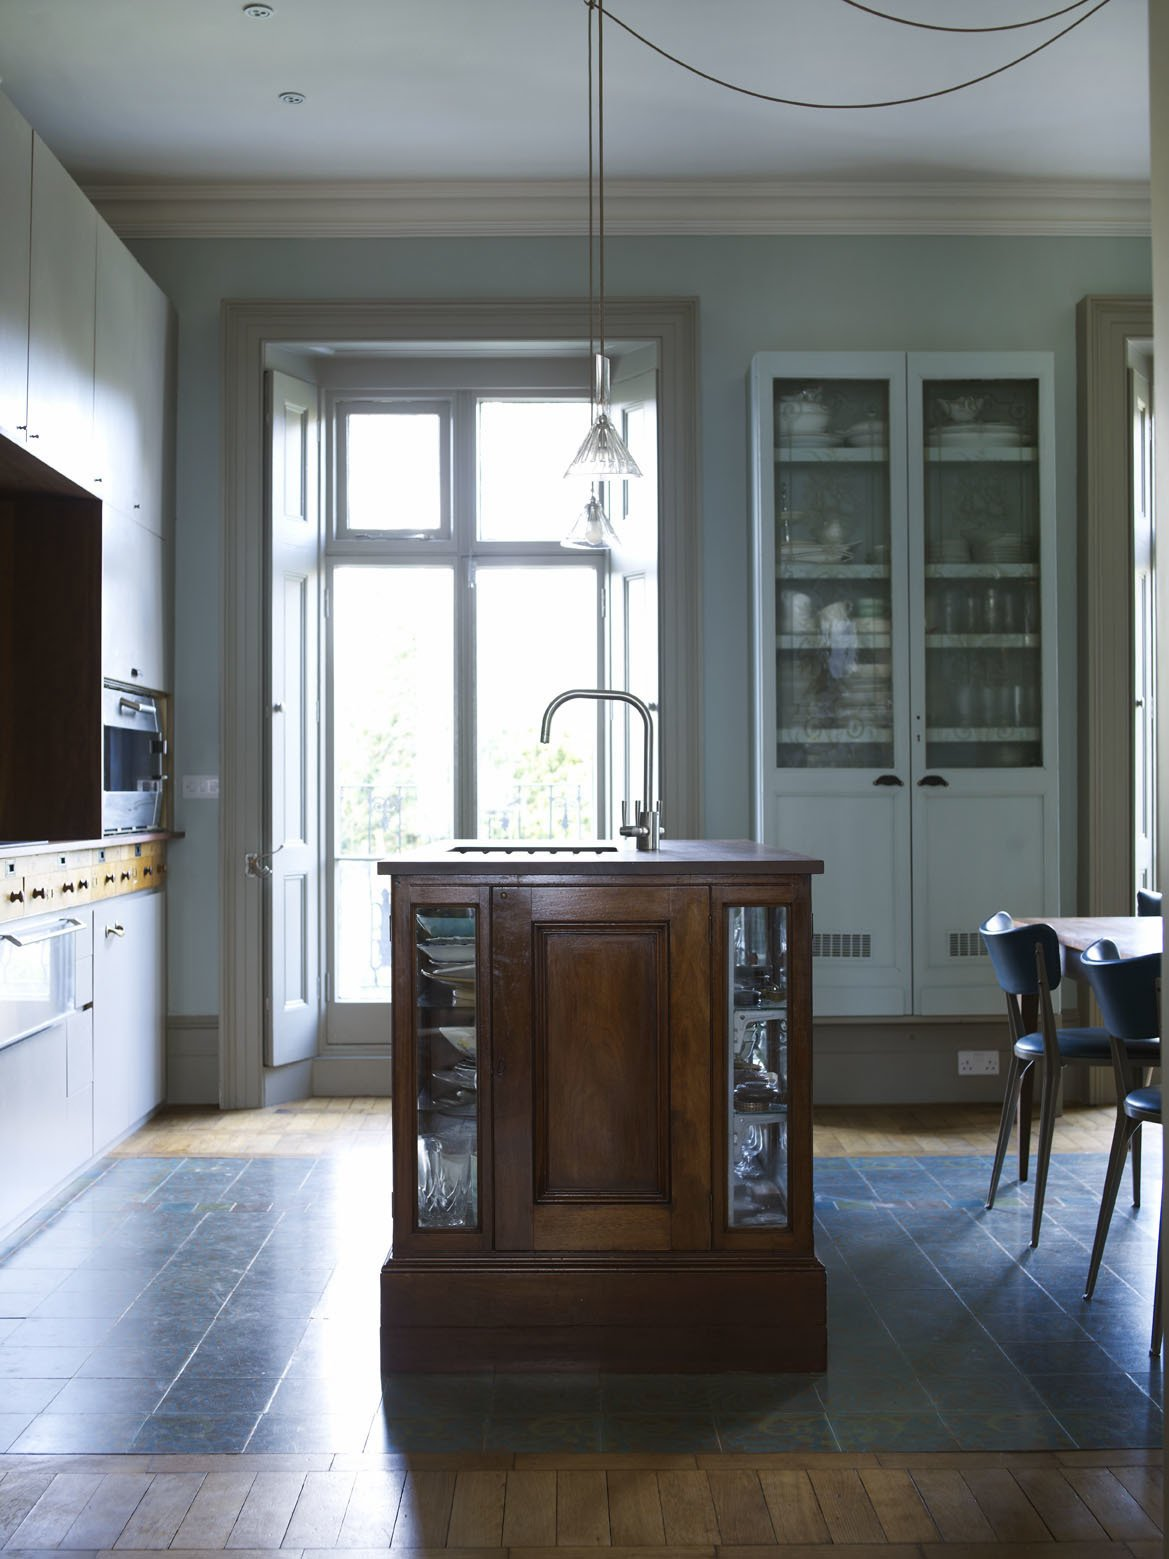 The kitchen island is a mahogany museum display case containing the clients' inherited snuff-box collection. Now topped with salvaged iroko hardwood from a school science laboratory, it has also been adapted to hold a sink and washer.  Photo 4 of 12 in A Gracious London Terrace House Is Reborn with Salvaged Materials